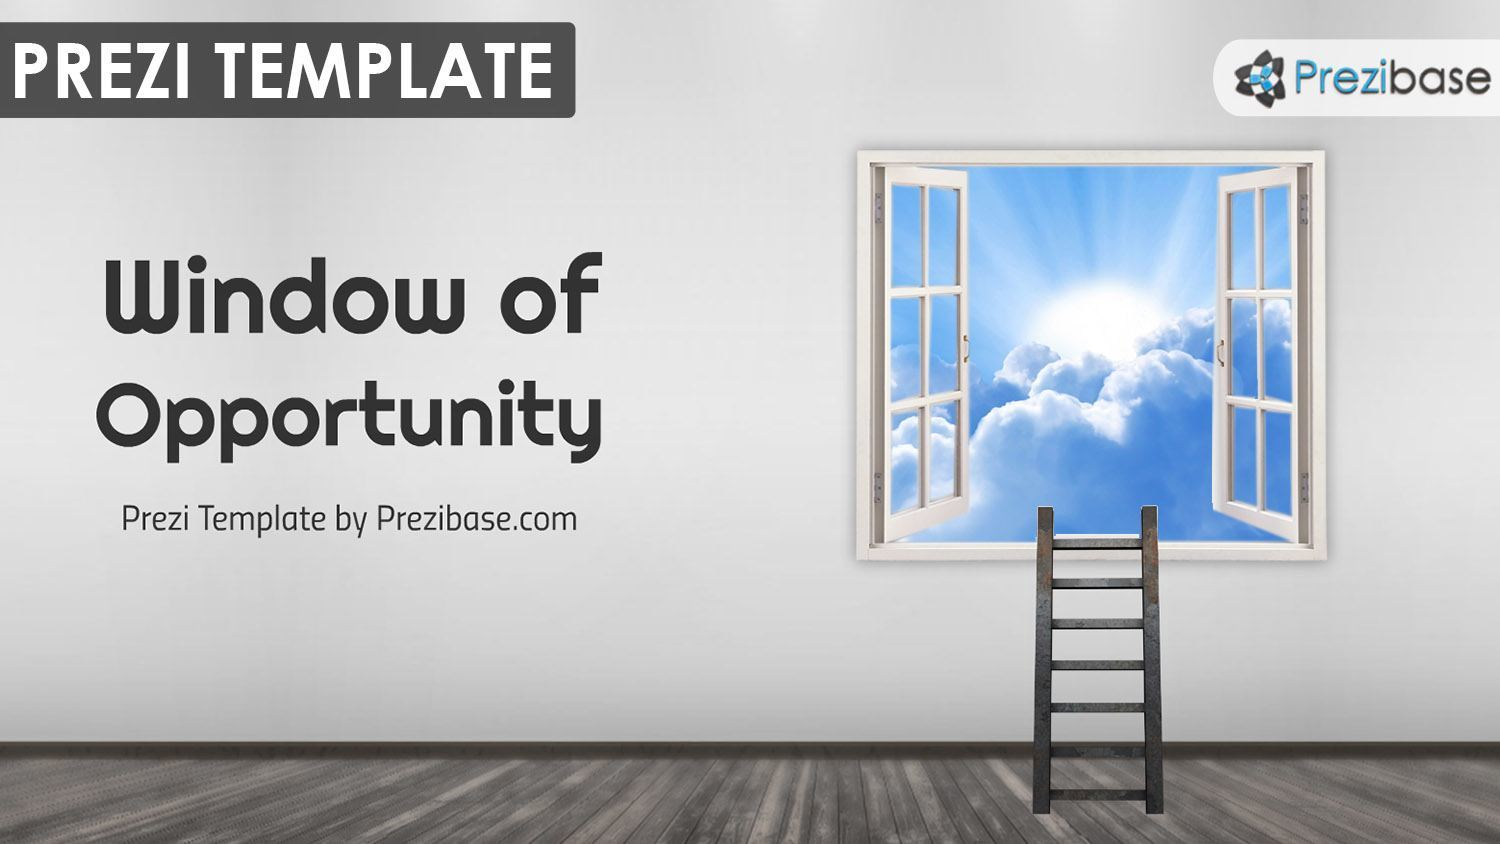 window of opportunity prezi template prezibase